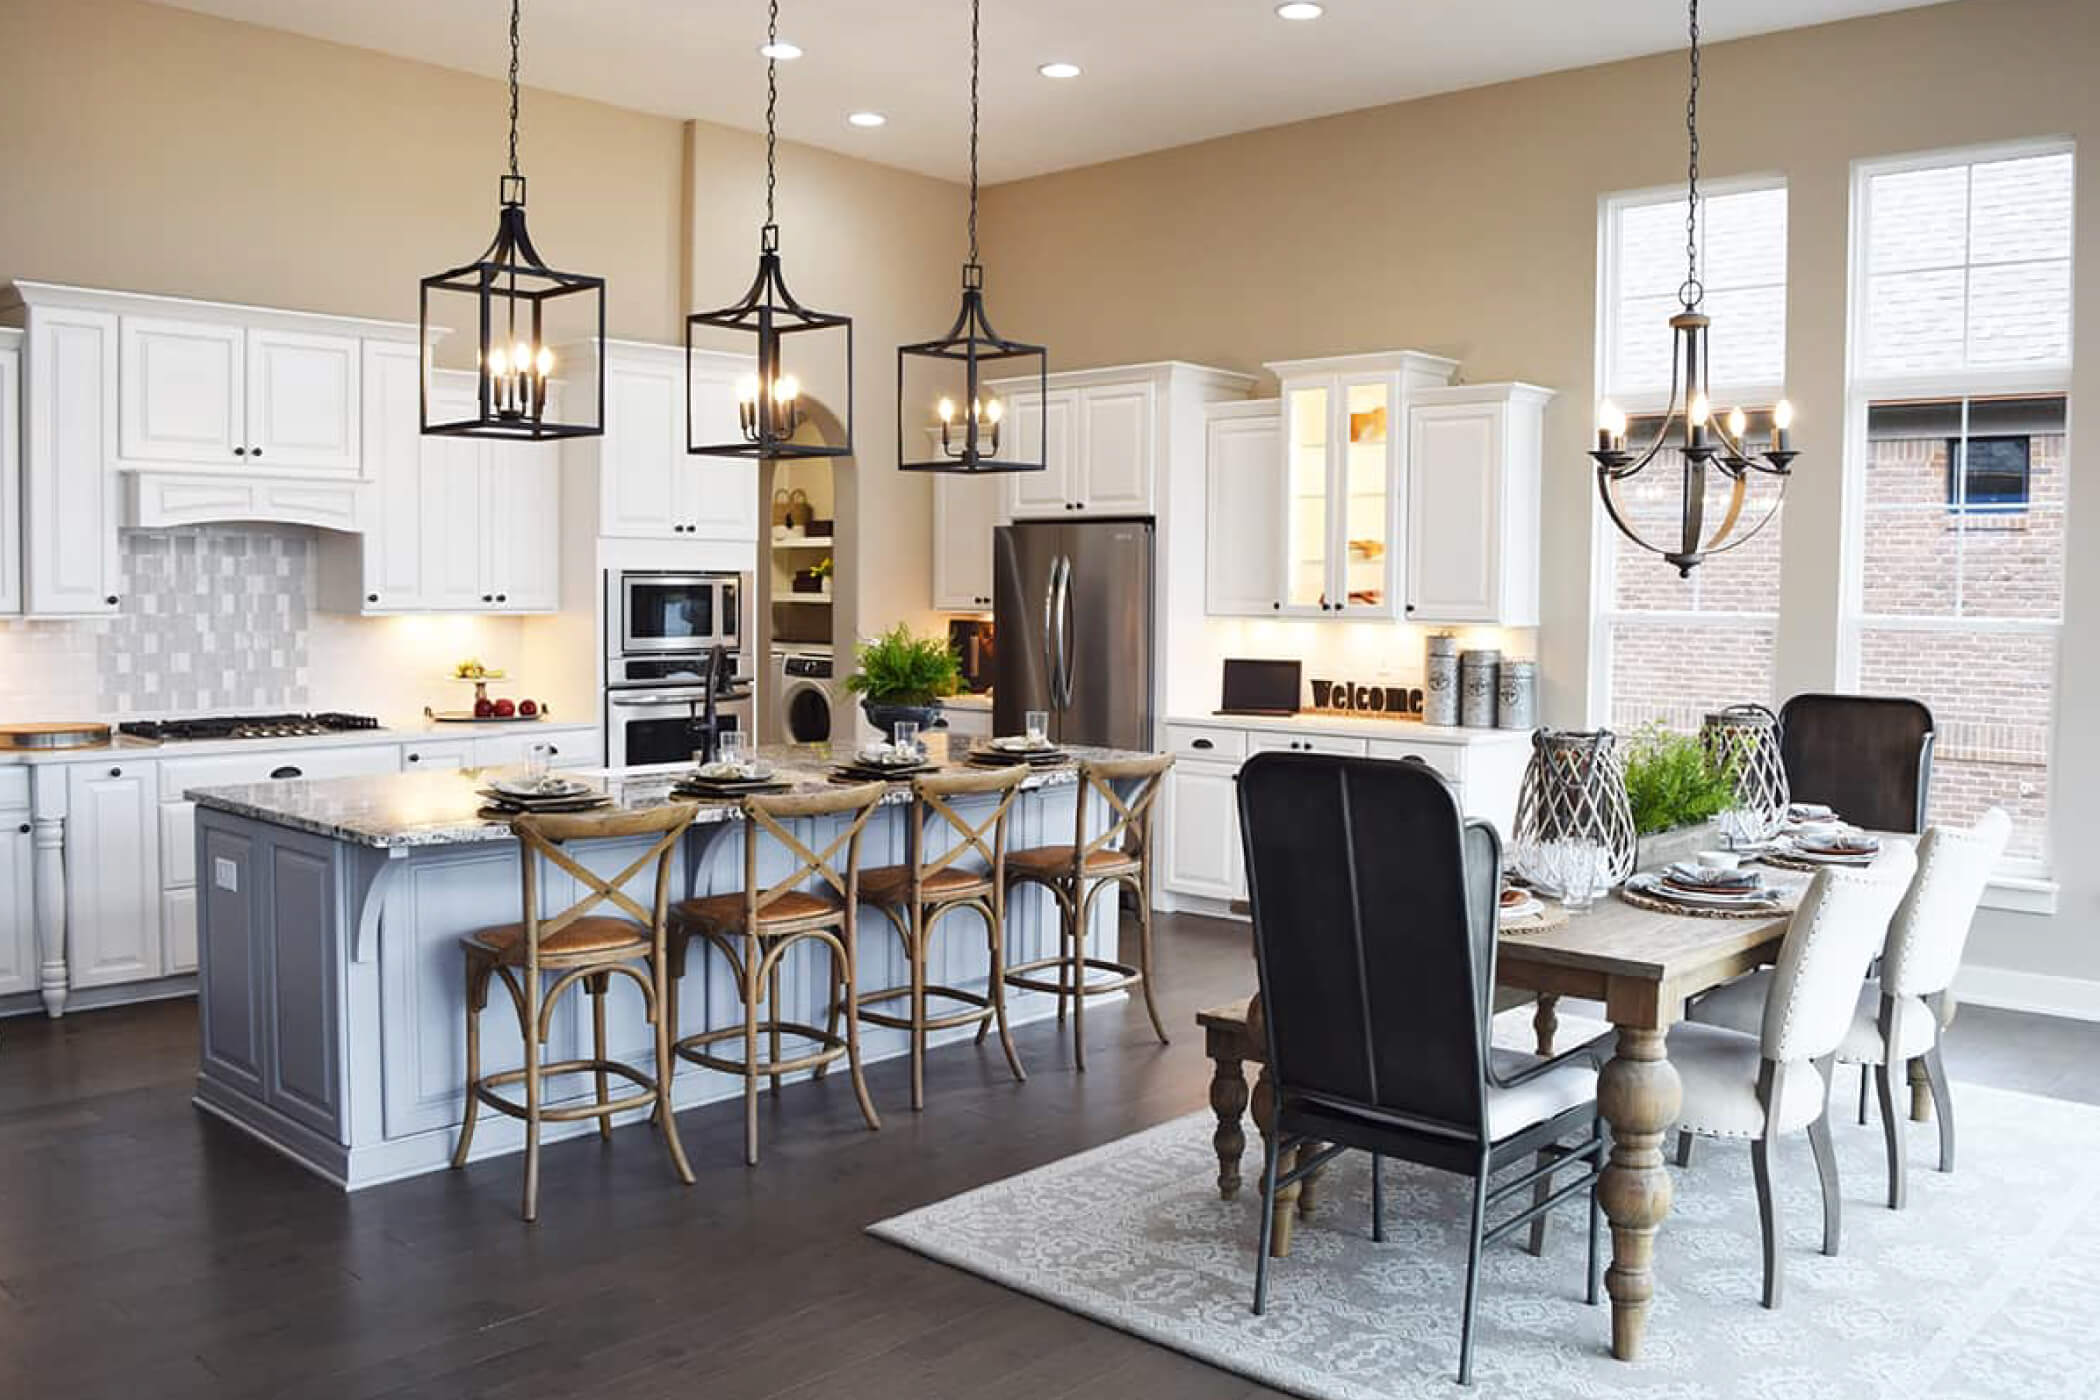 6 person wood dining room table in the kitchen of a custom home